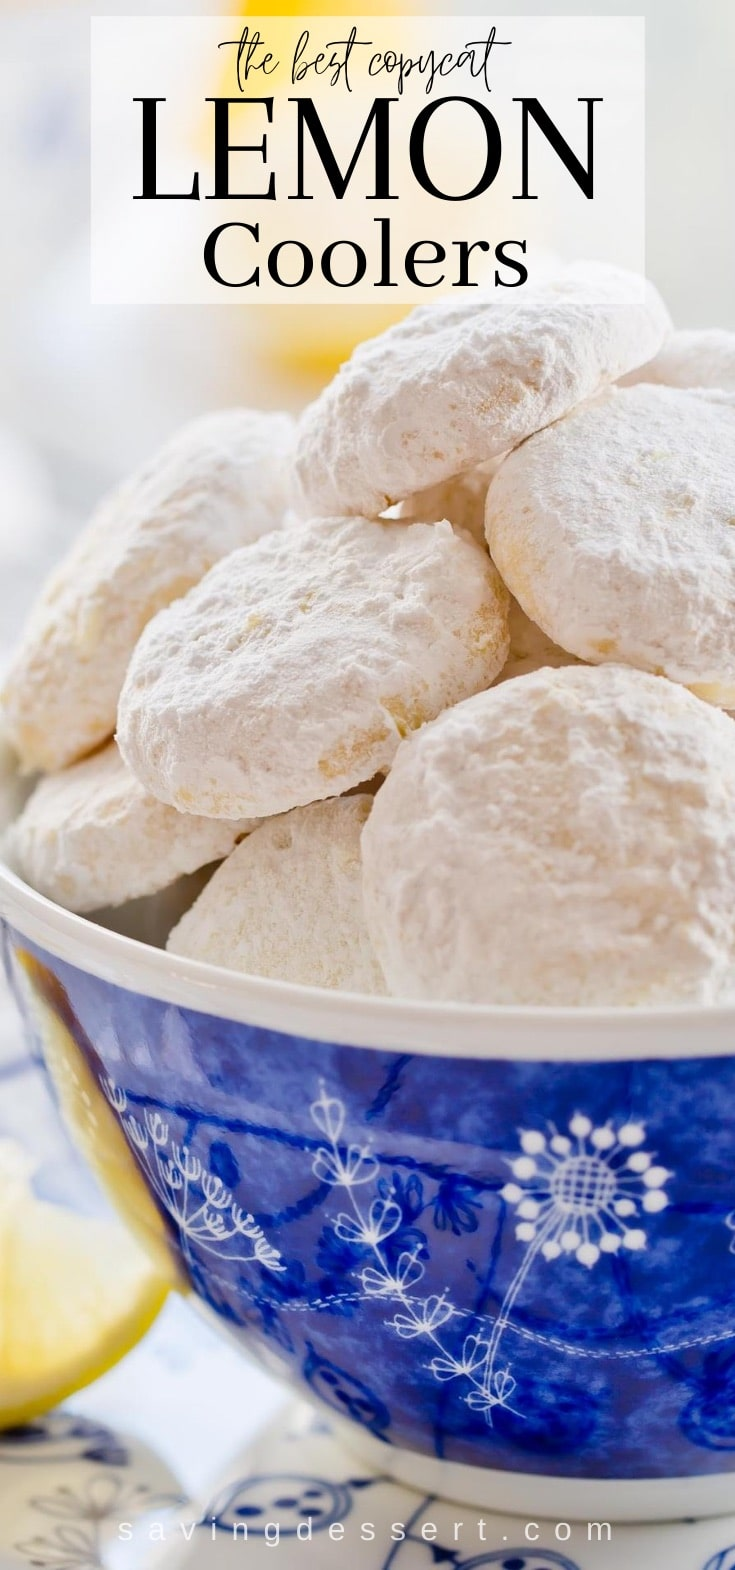 A blue bowl filled with powder sugar covered lemon cookies